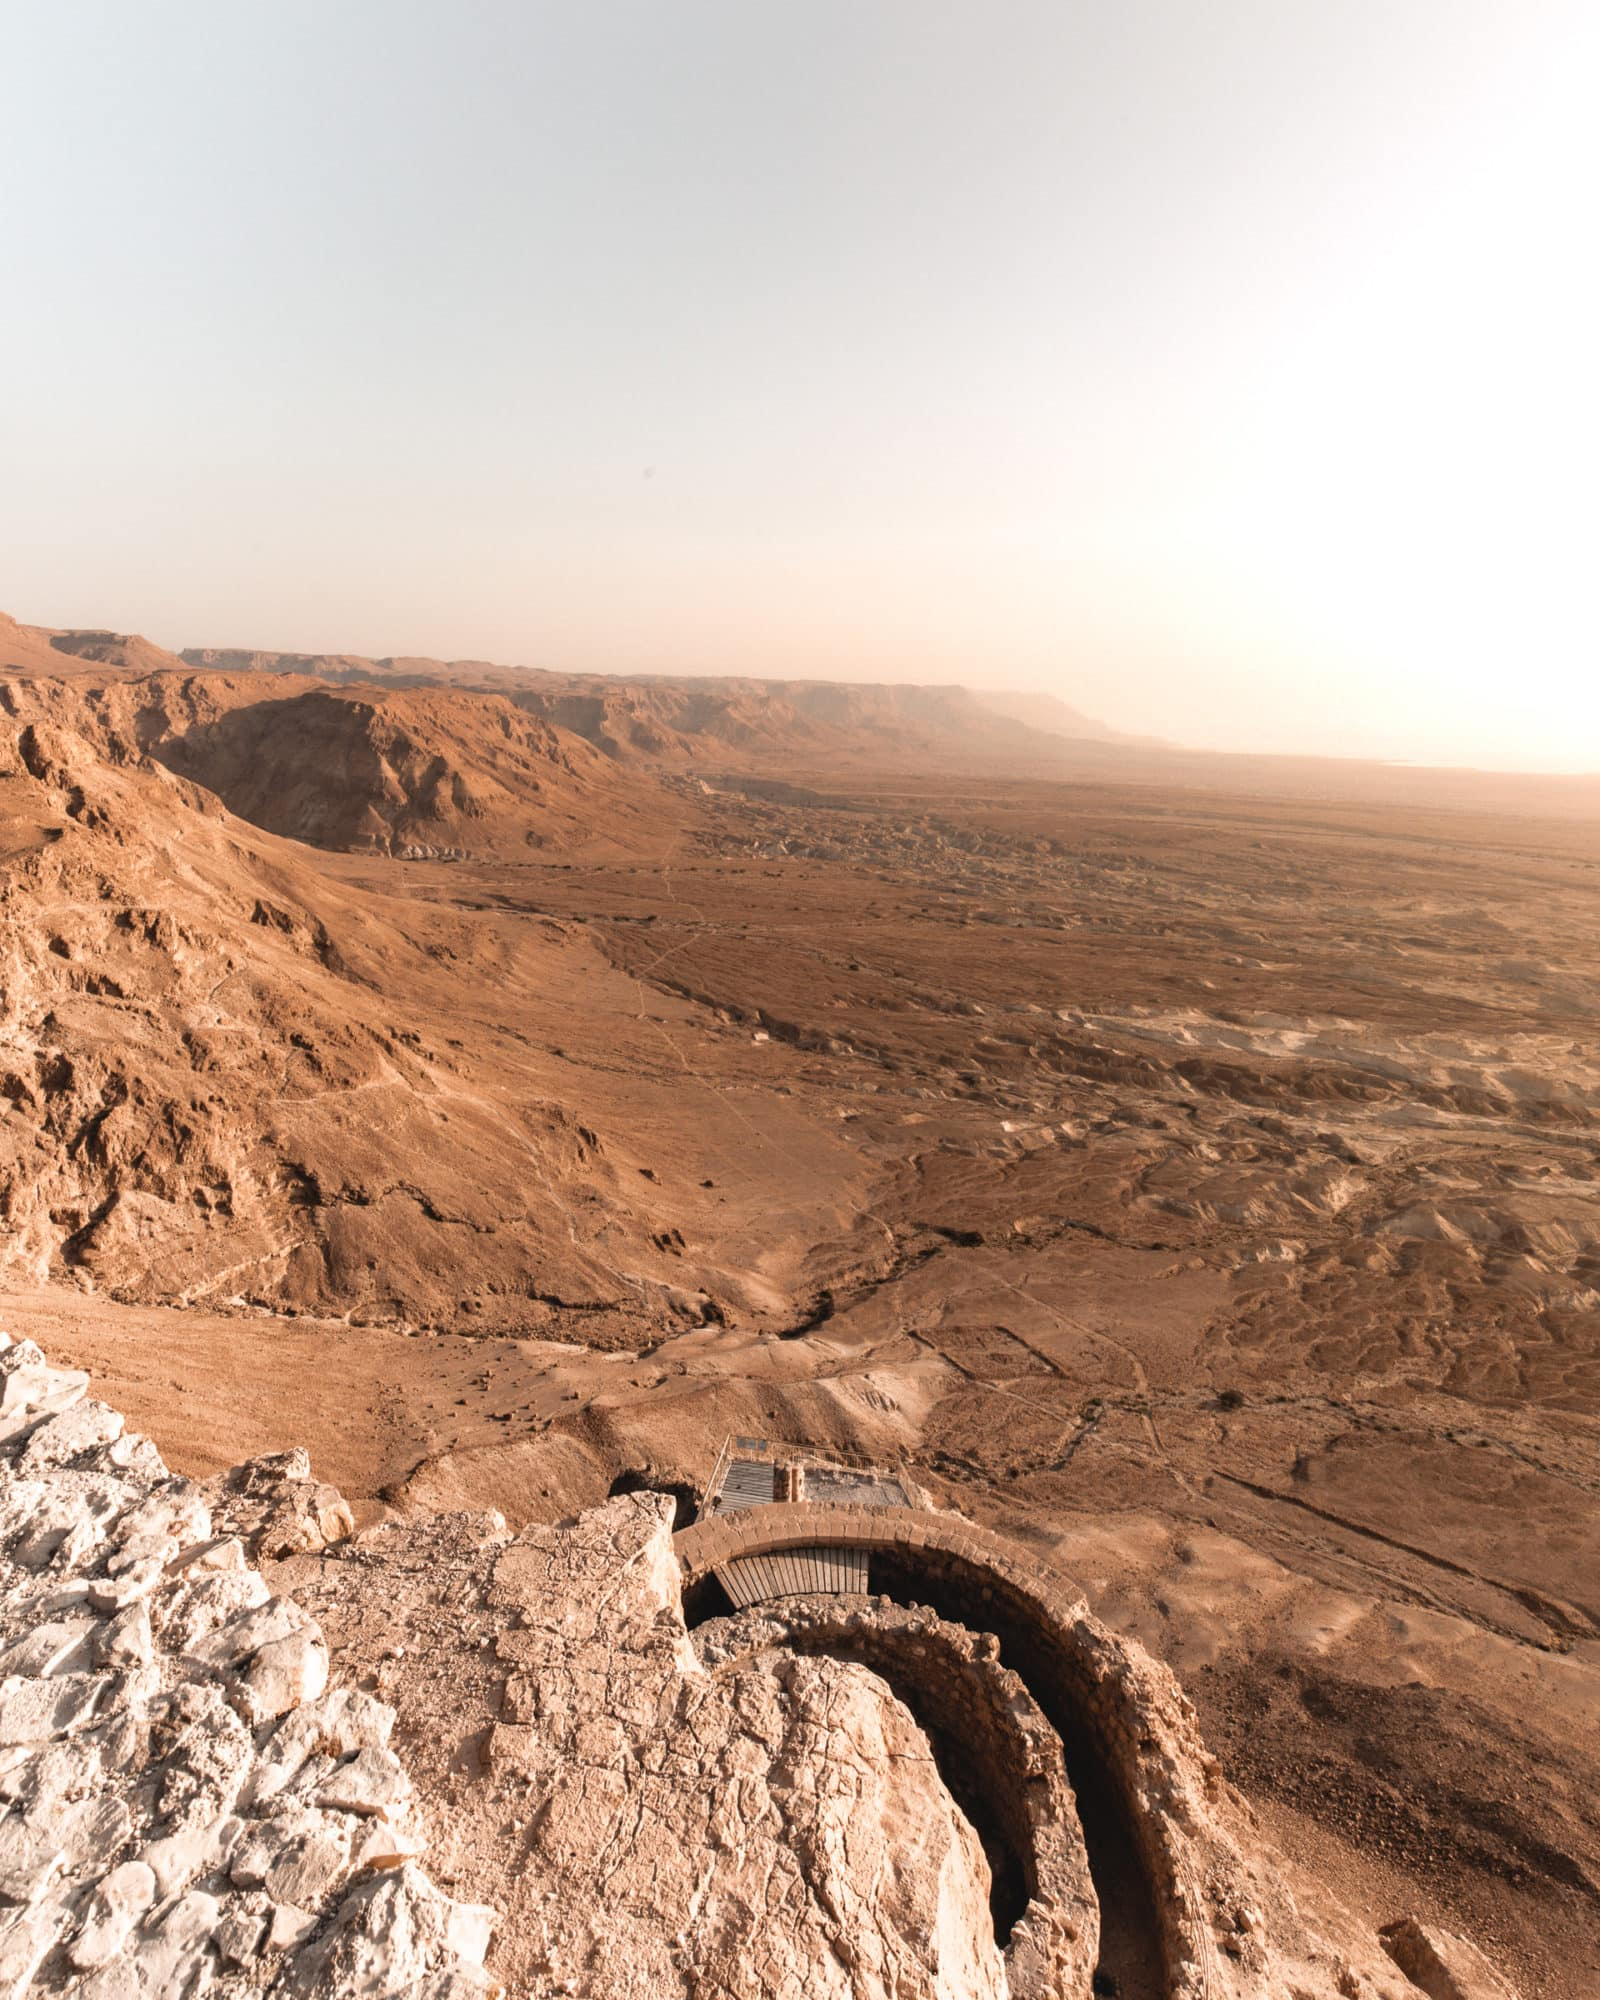 Masada sunrise King Herodes palace